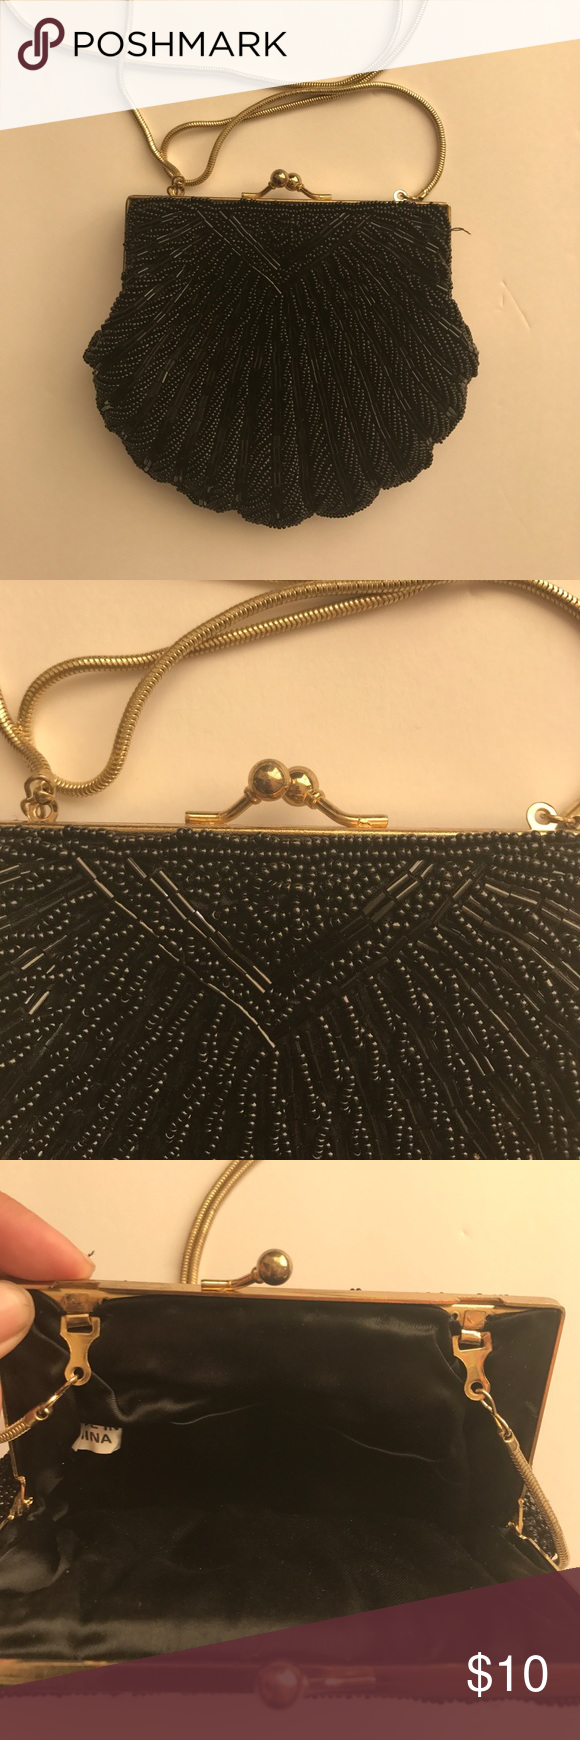 Black Beaded Shell Shaped Evening Purse Black beaded. Shell shaped with gold colored accents. No missing beads. Handle is 17 inches drop. Measures 5 1/2 x 6 inches. Bags Mini Bags